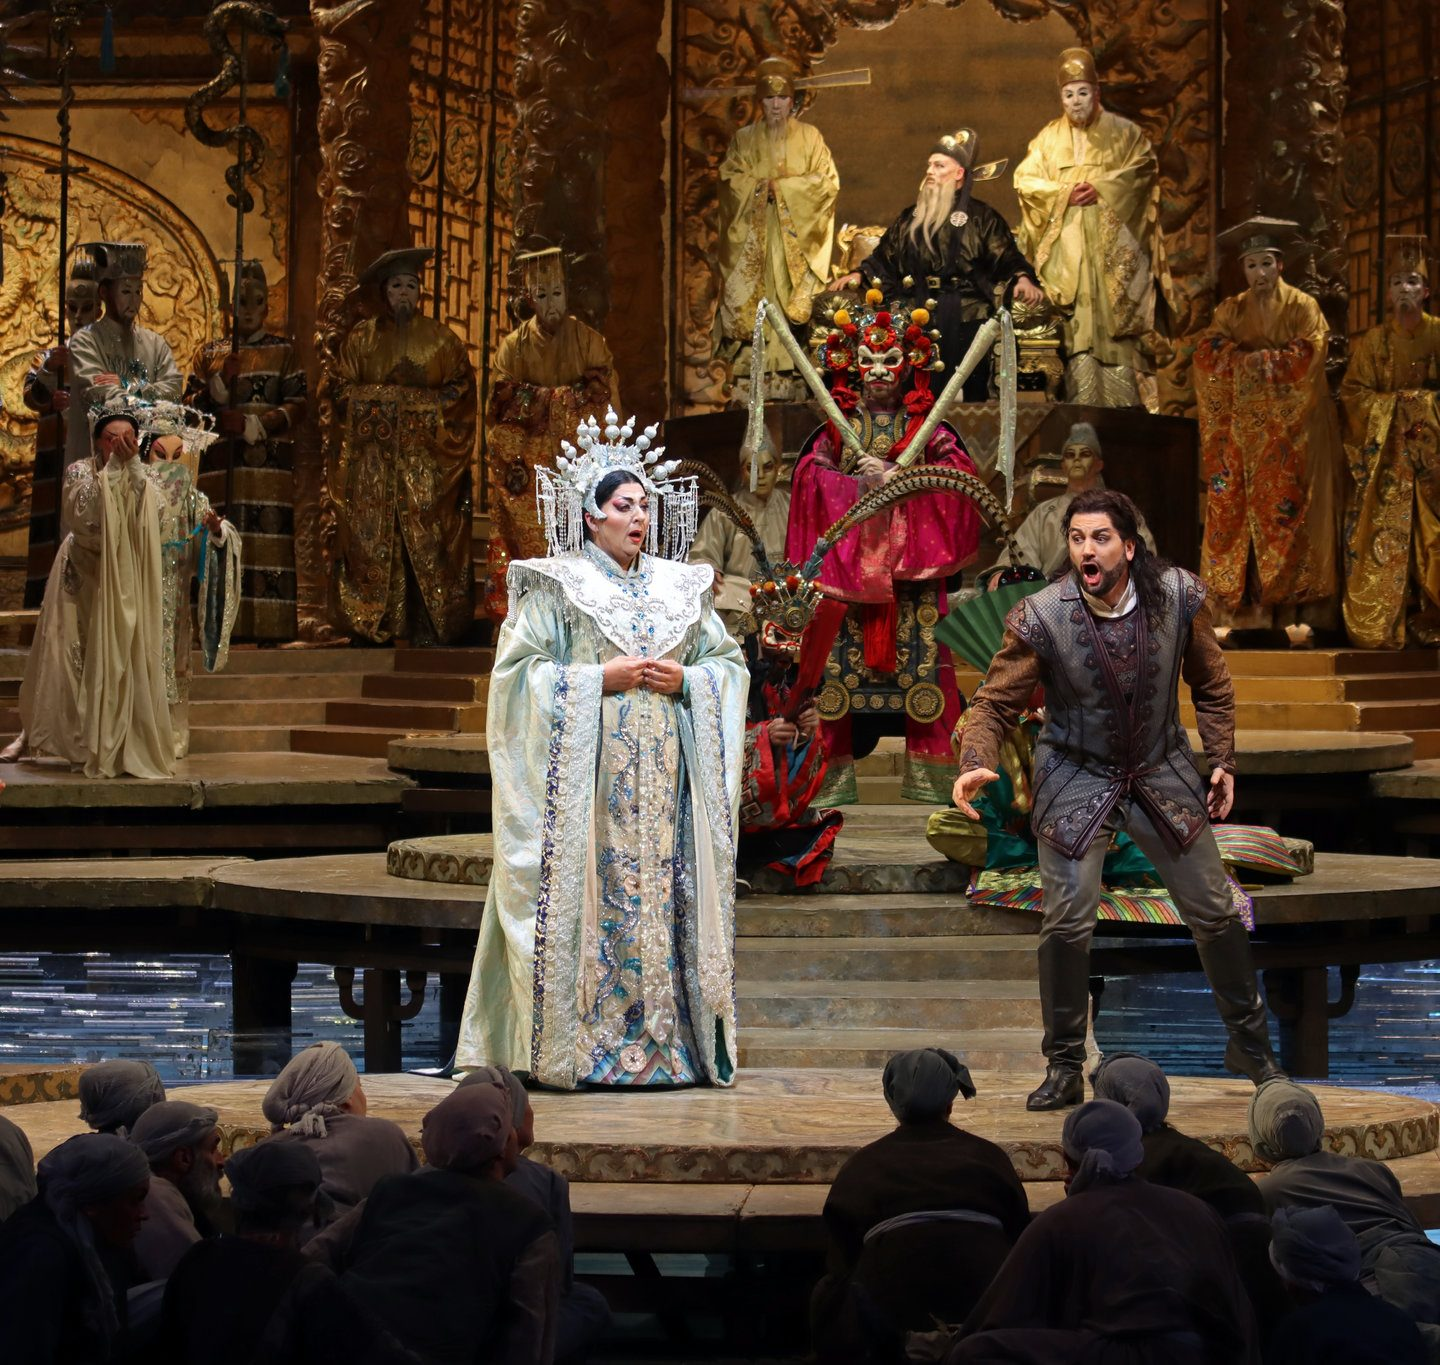 A Day at the Opera: re-imagining Puccini's 'Turandot'